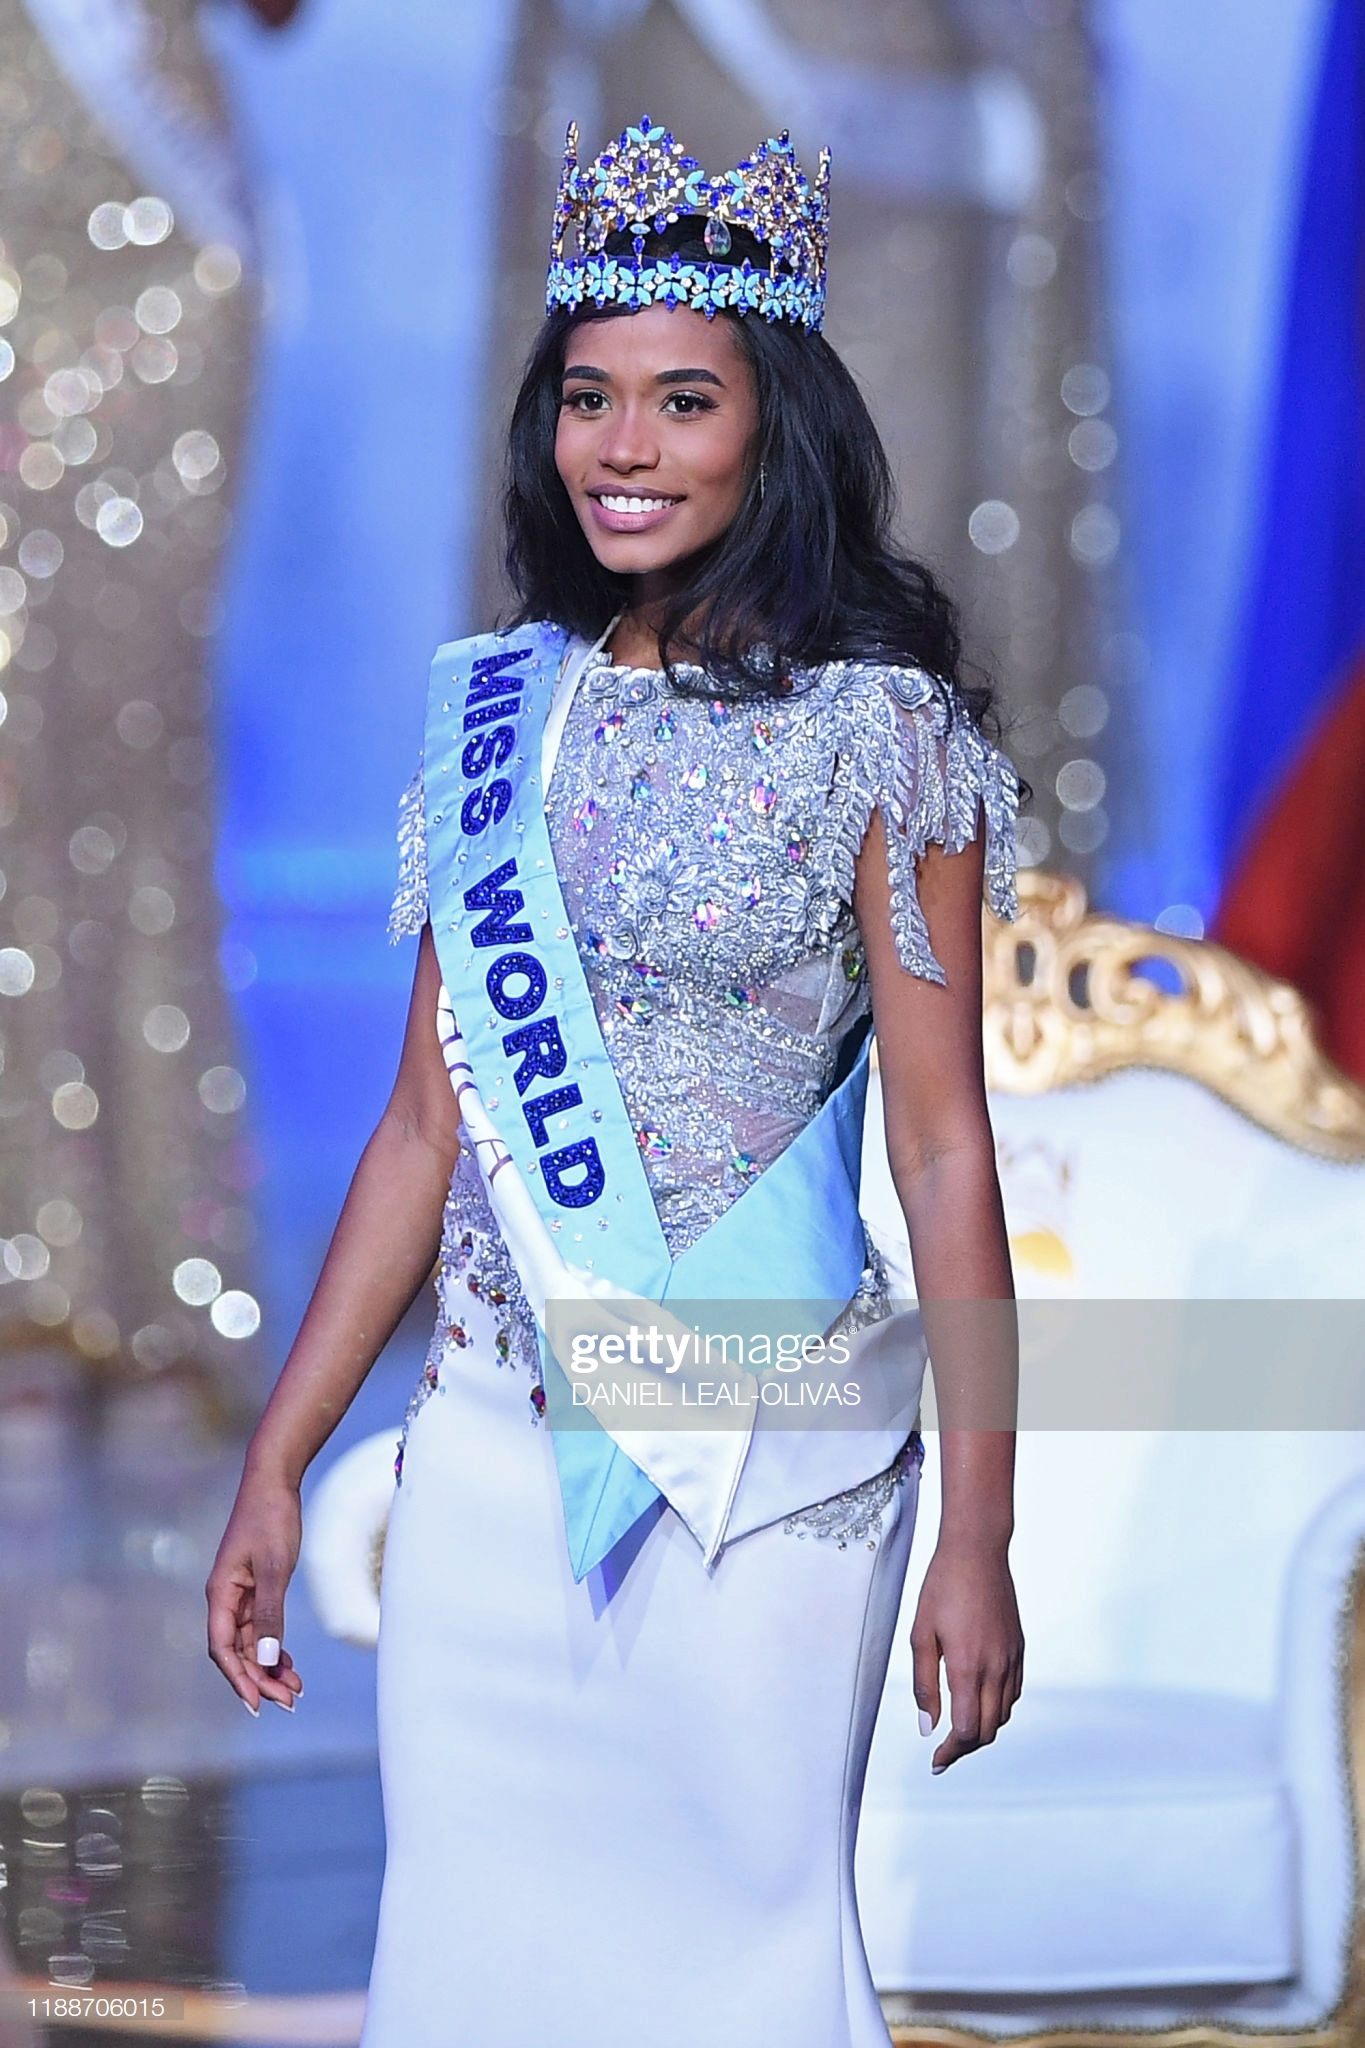 toni-ann singh, miss world 2019. Newly-11